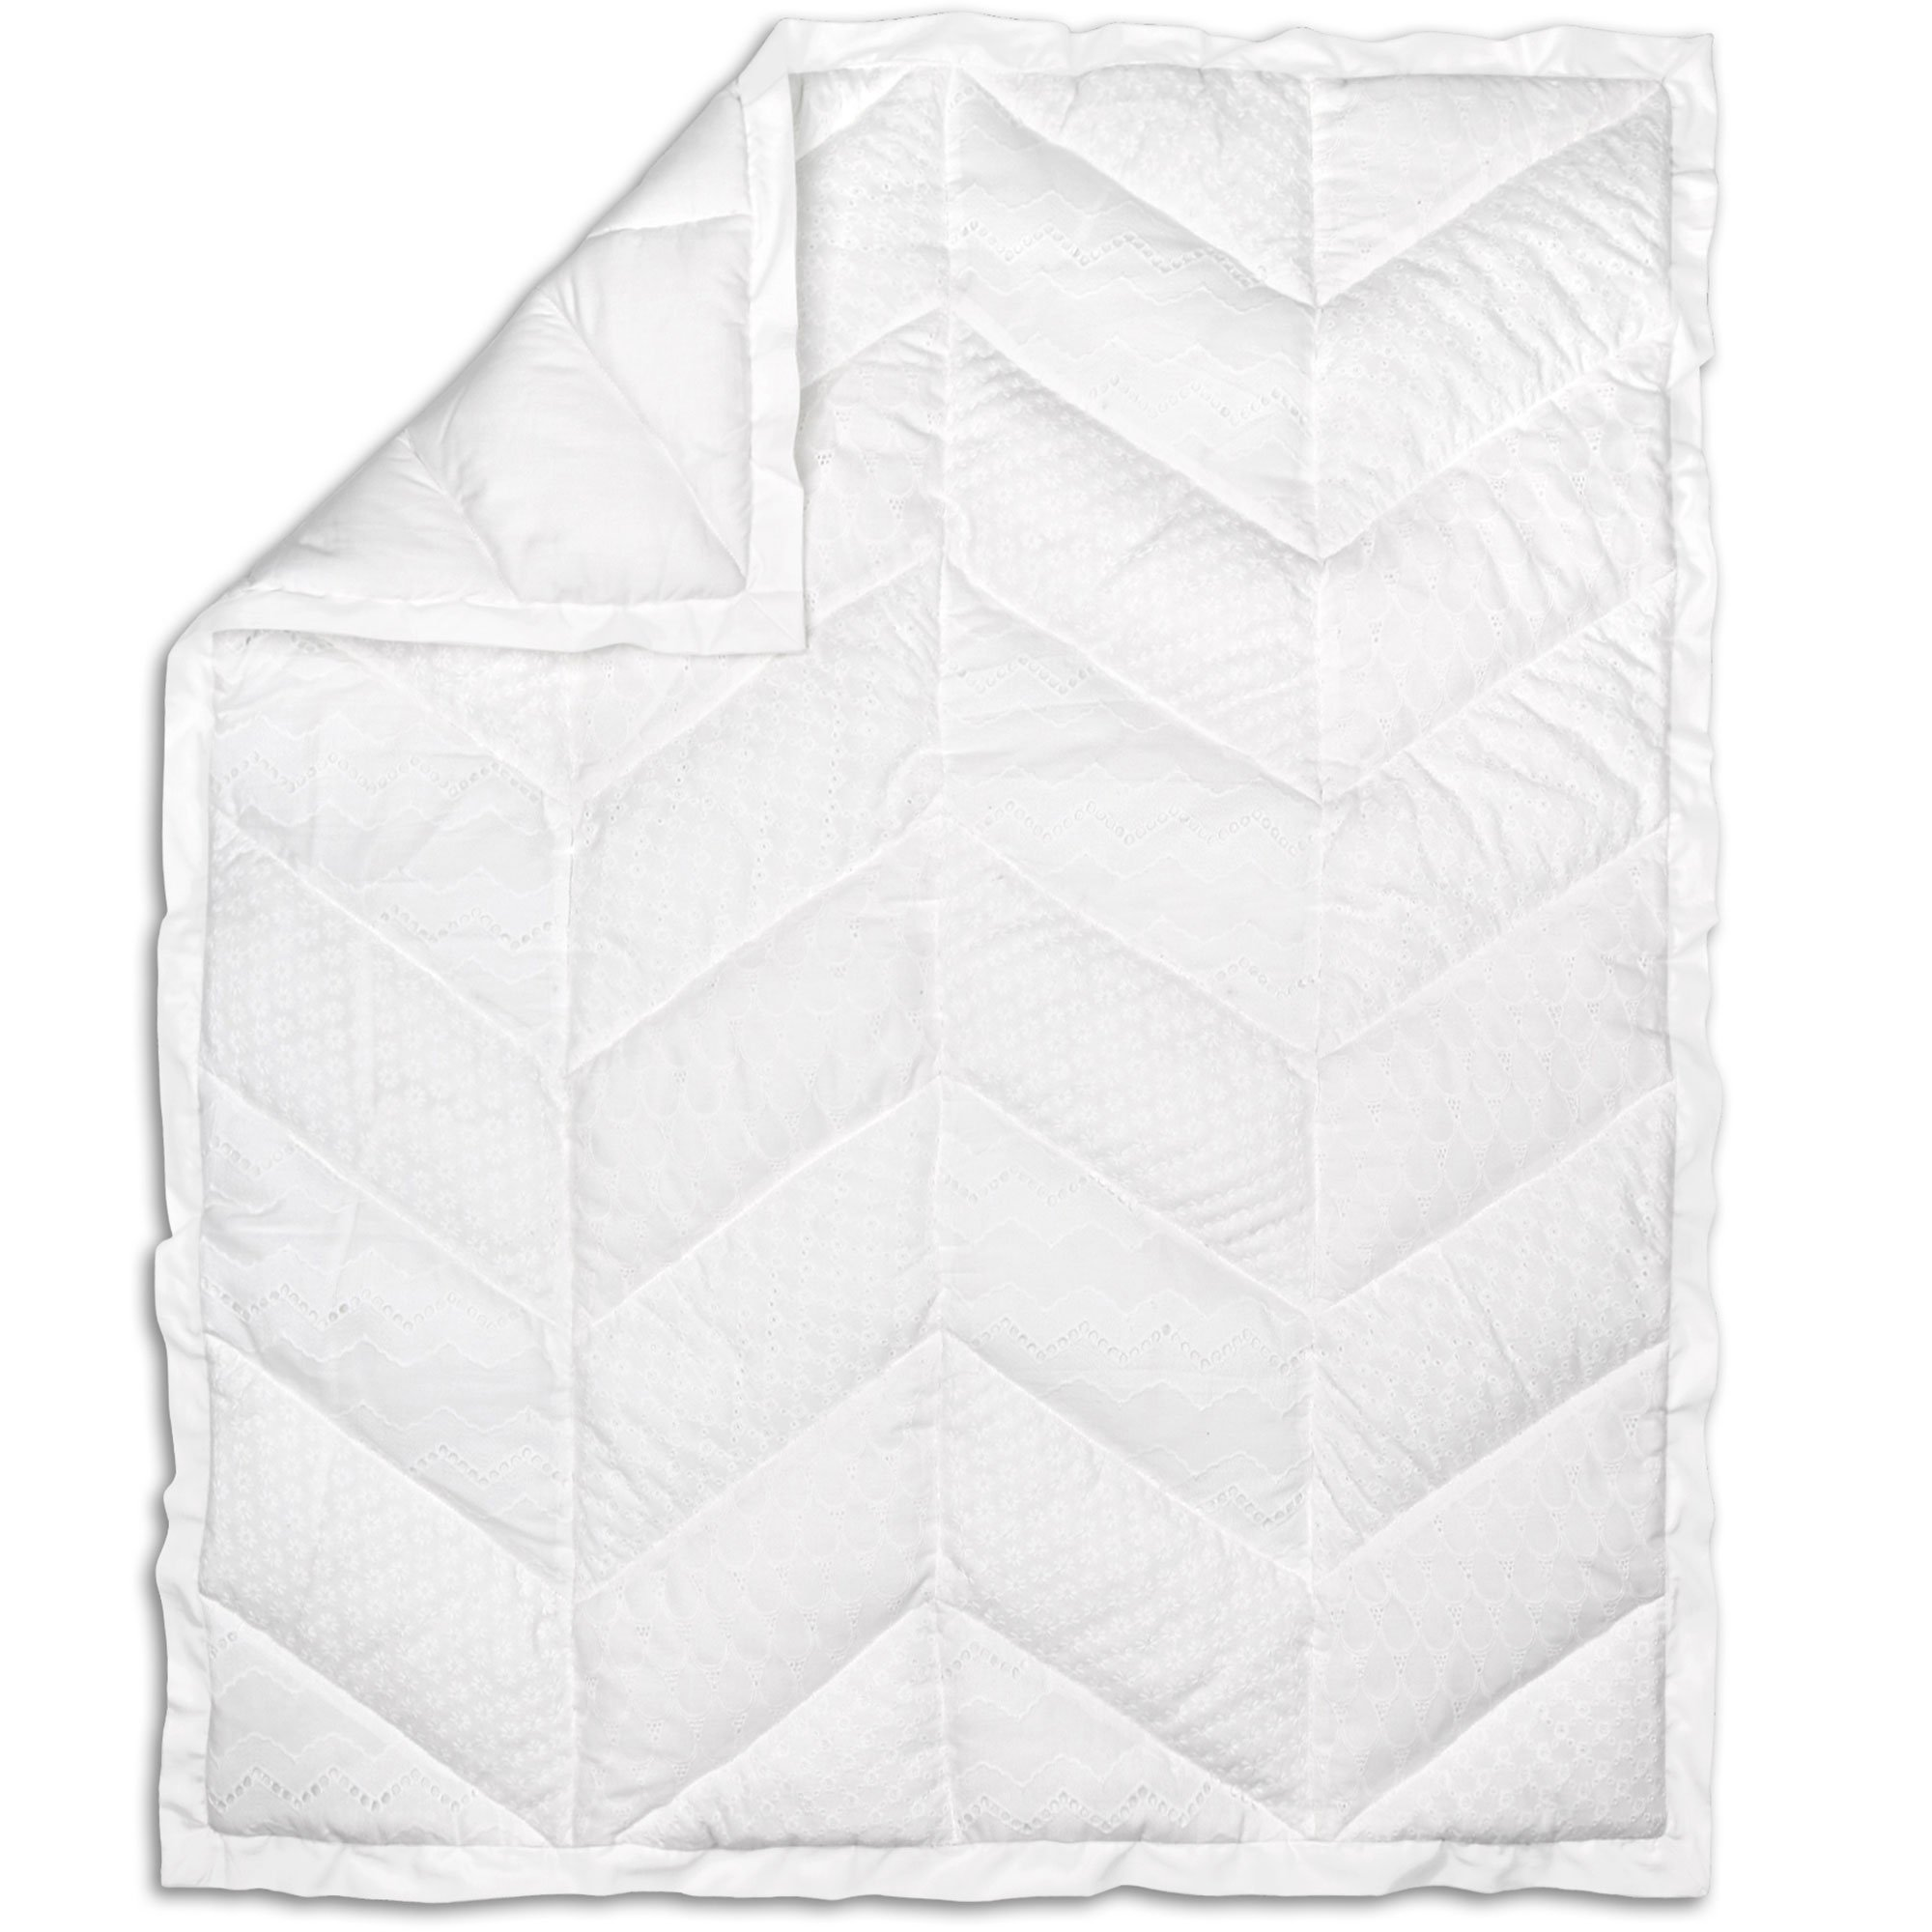 Taylor White Eyelet Baby Girl Crib Quilt by The Peanut Shell